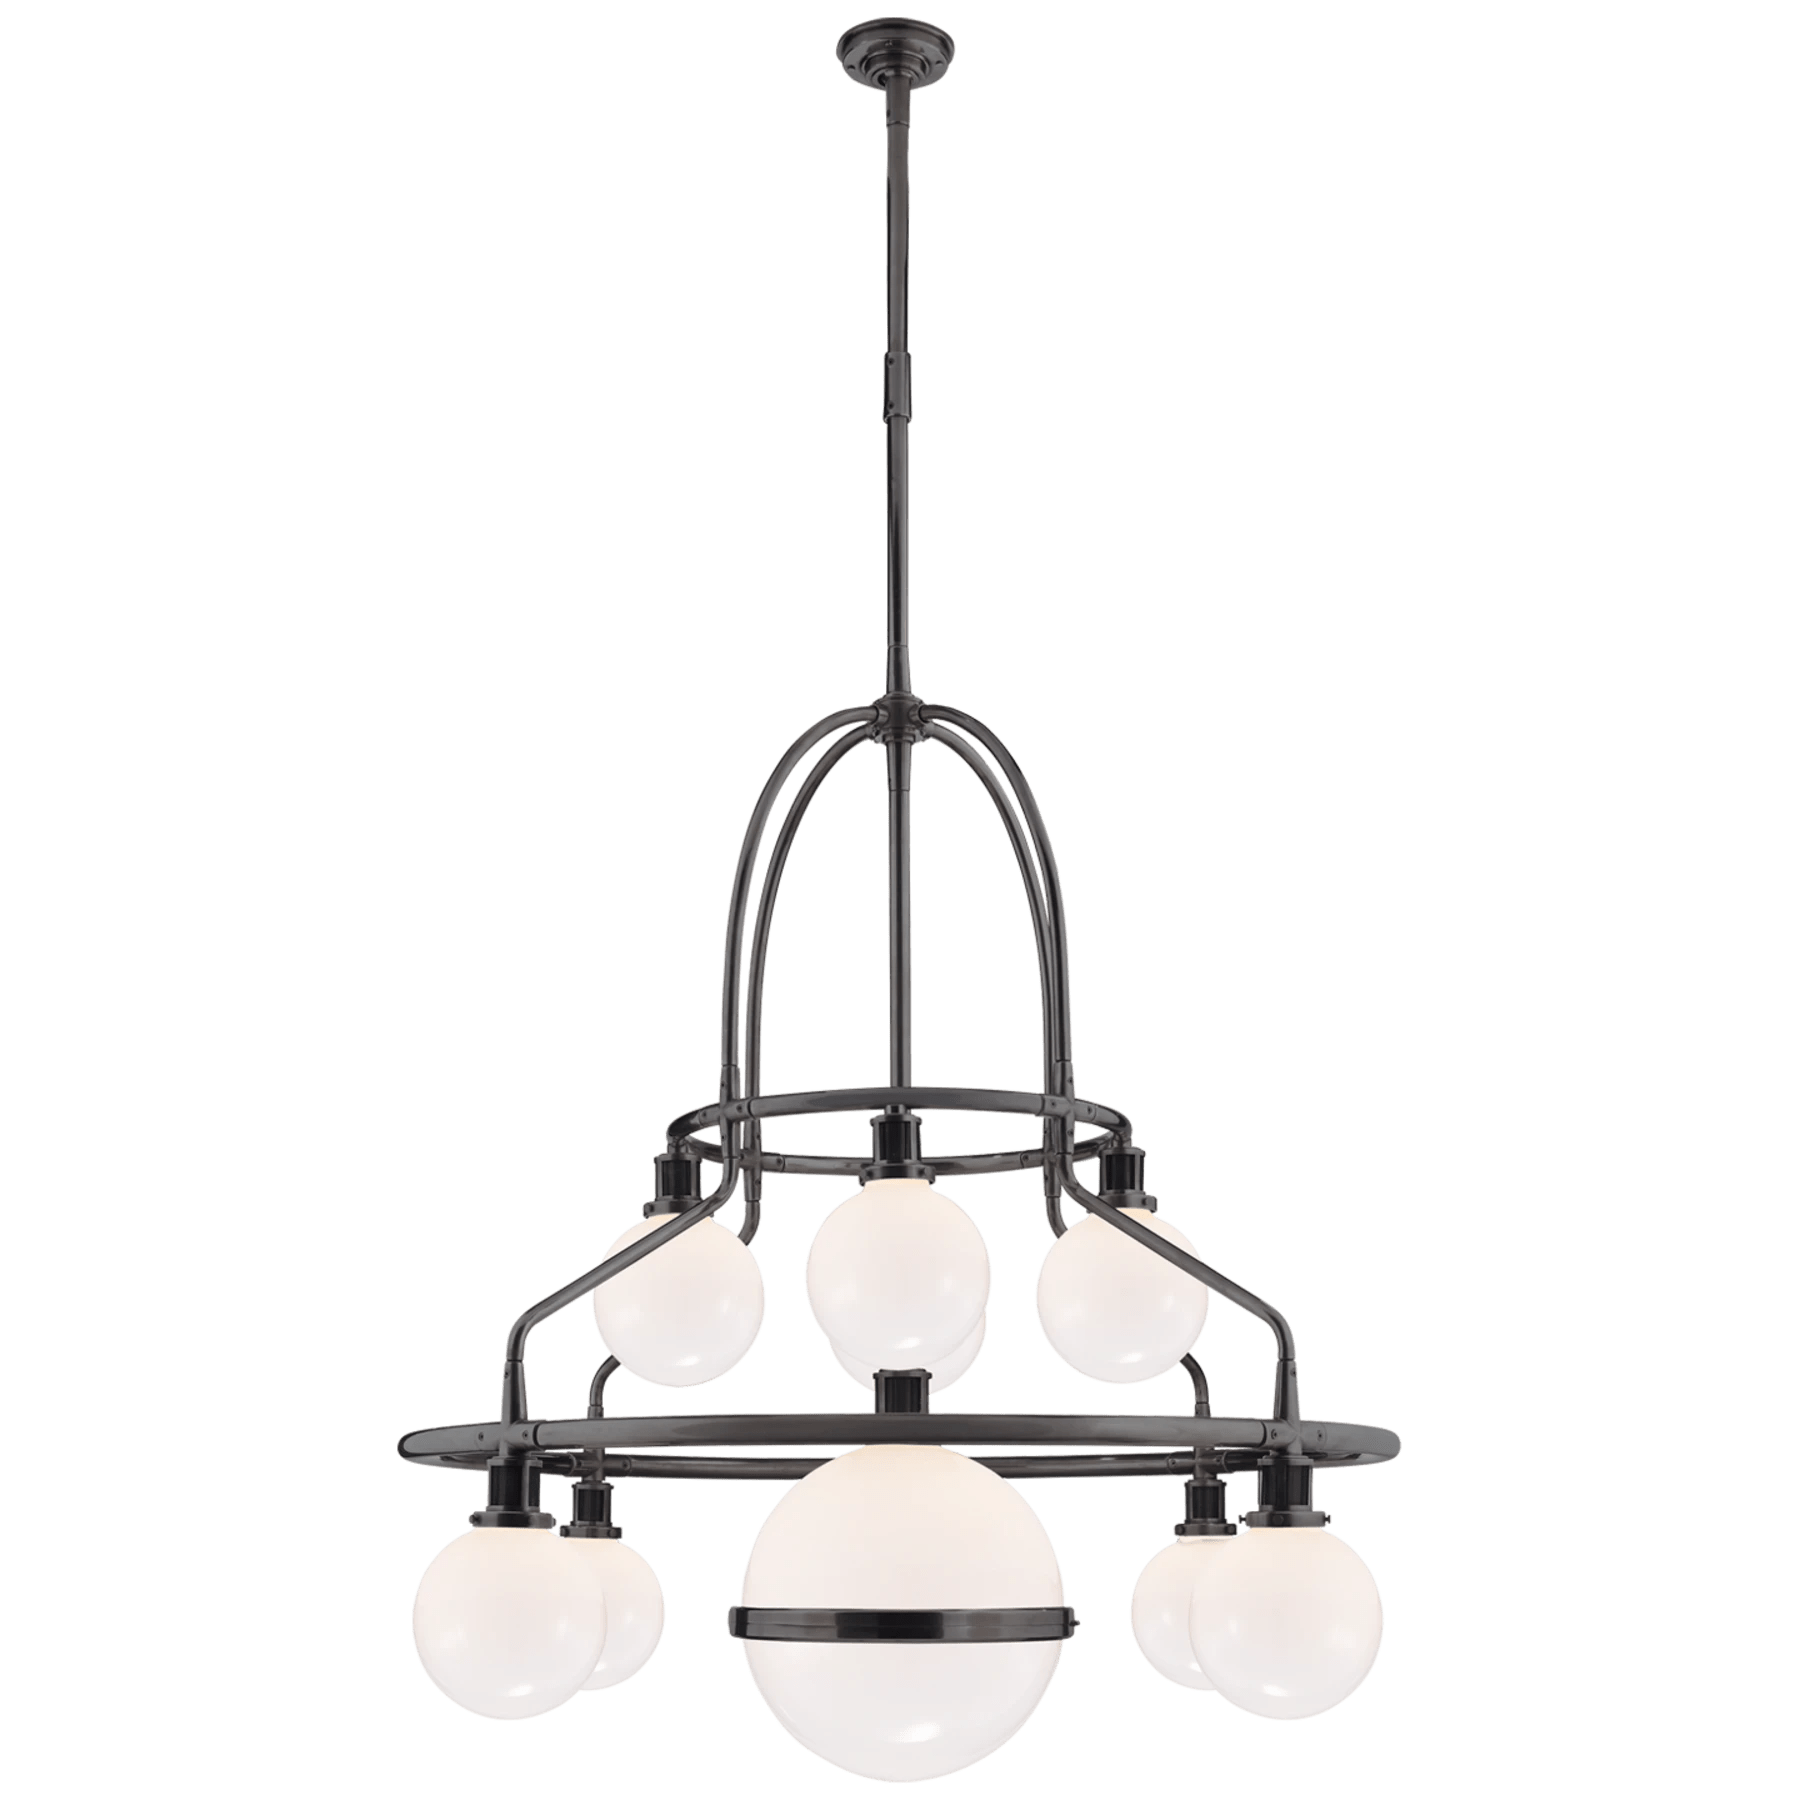 Mccarren Double Tier Chandelier